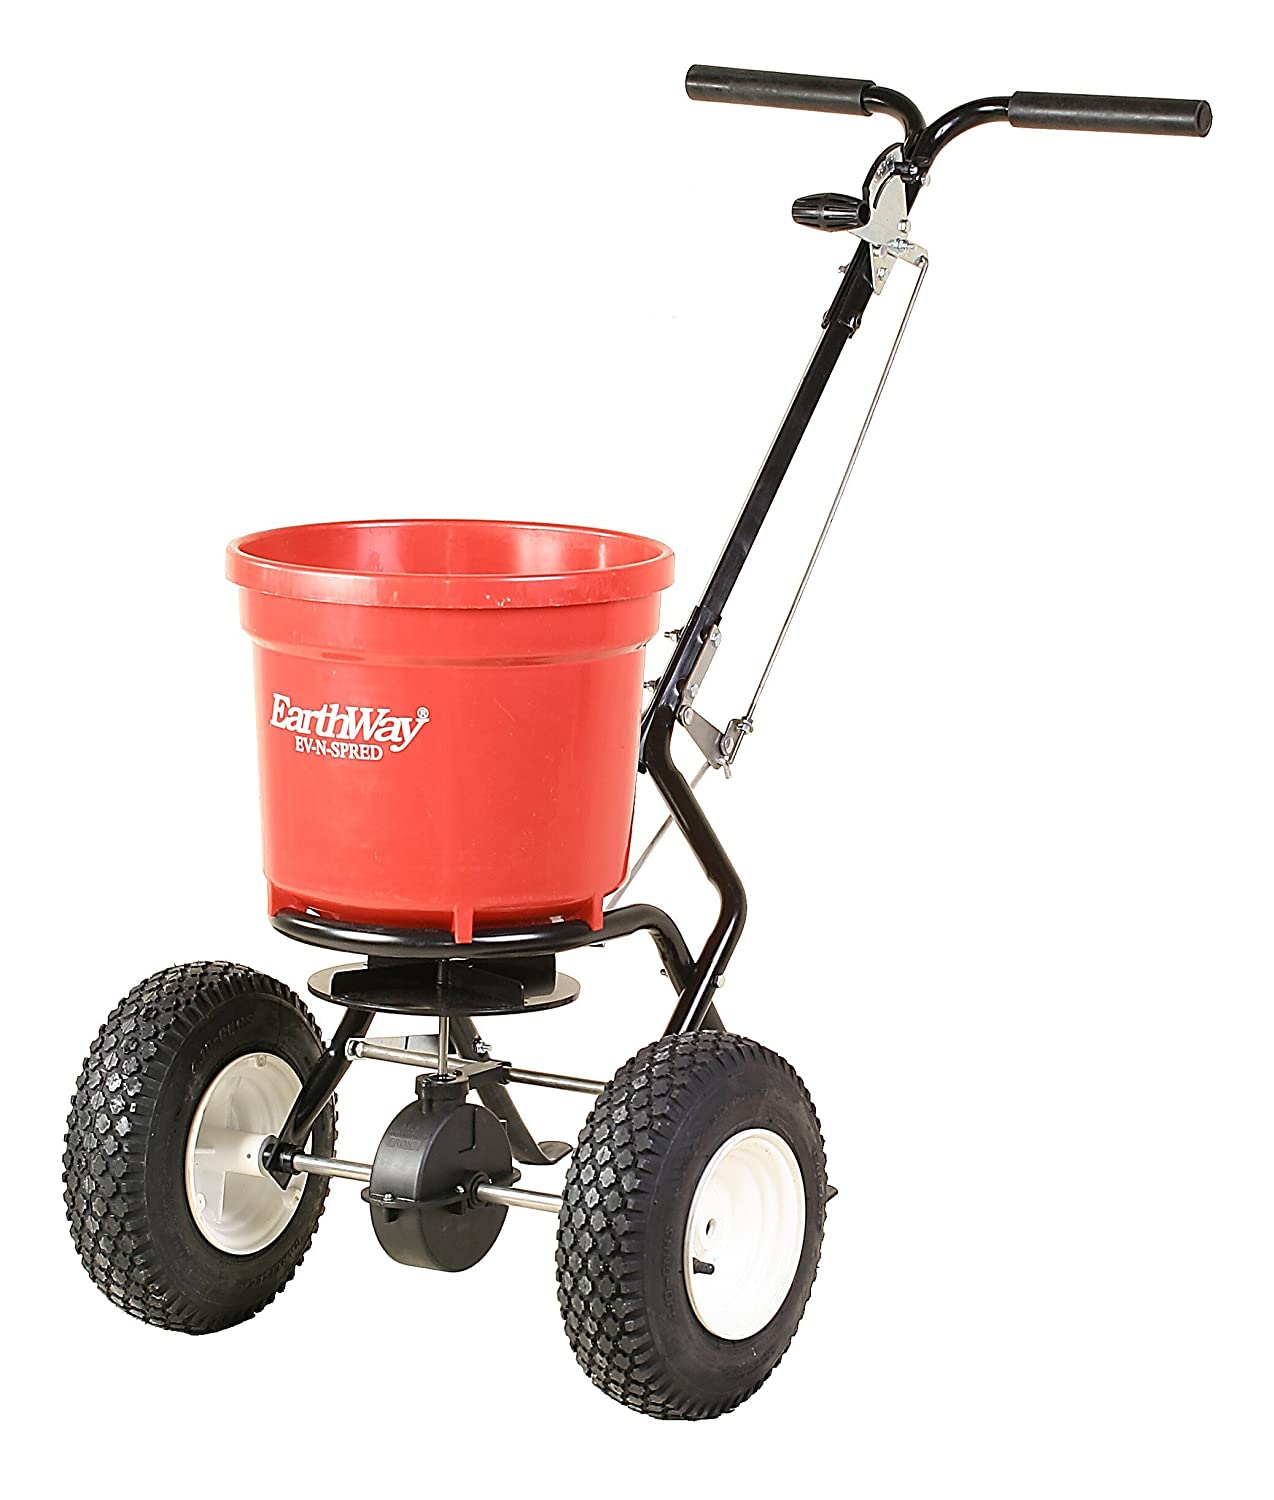 Earthway 50-Pound Walk-Behind Broadcast Spreader